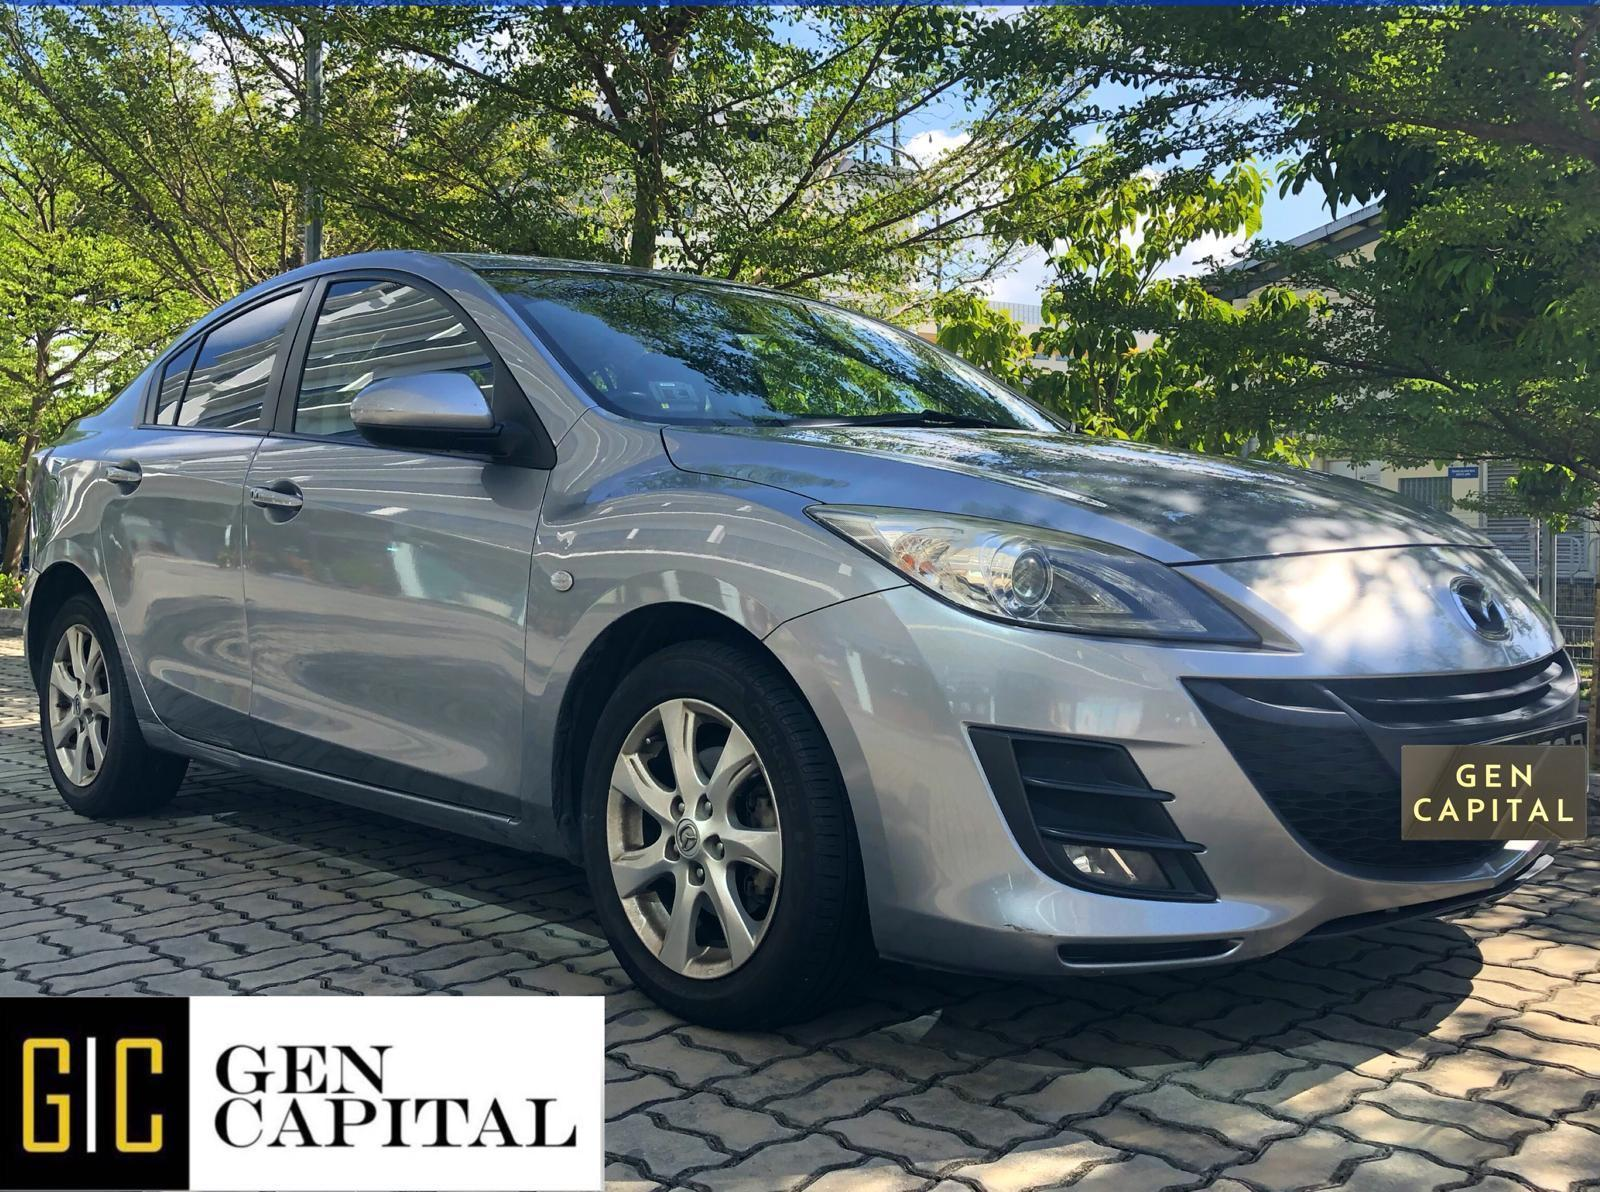 Mazda 3 1.6A - Cheapest rental in town, full support!